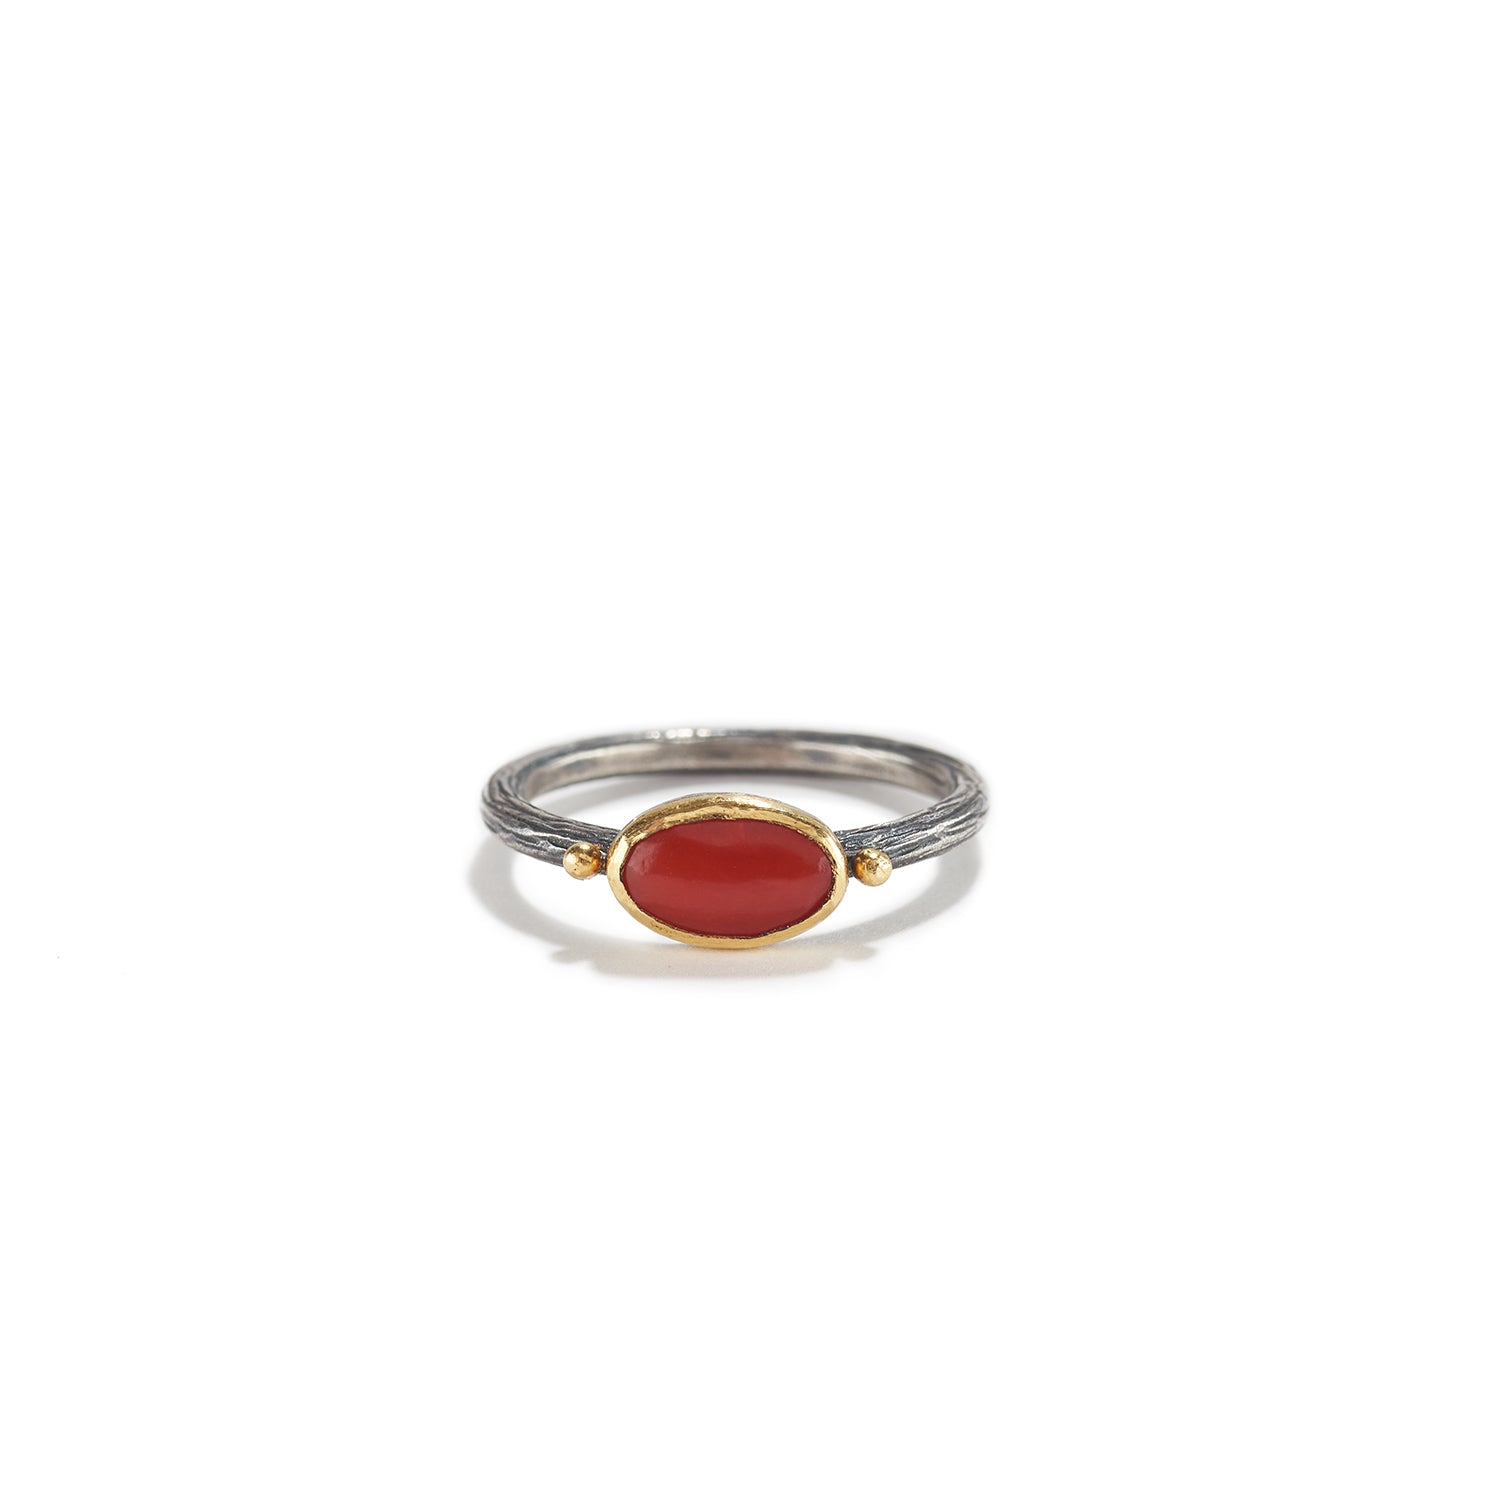 Coral Ring with Silver